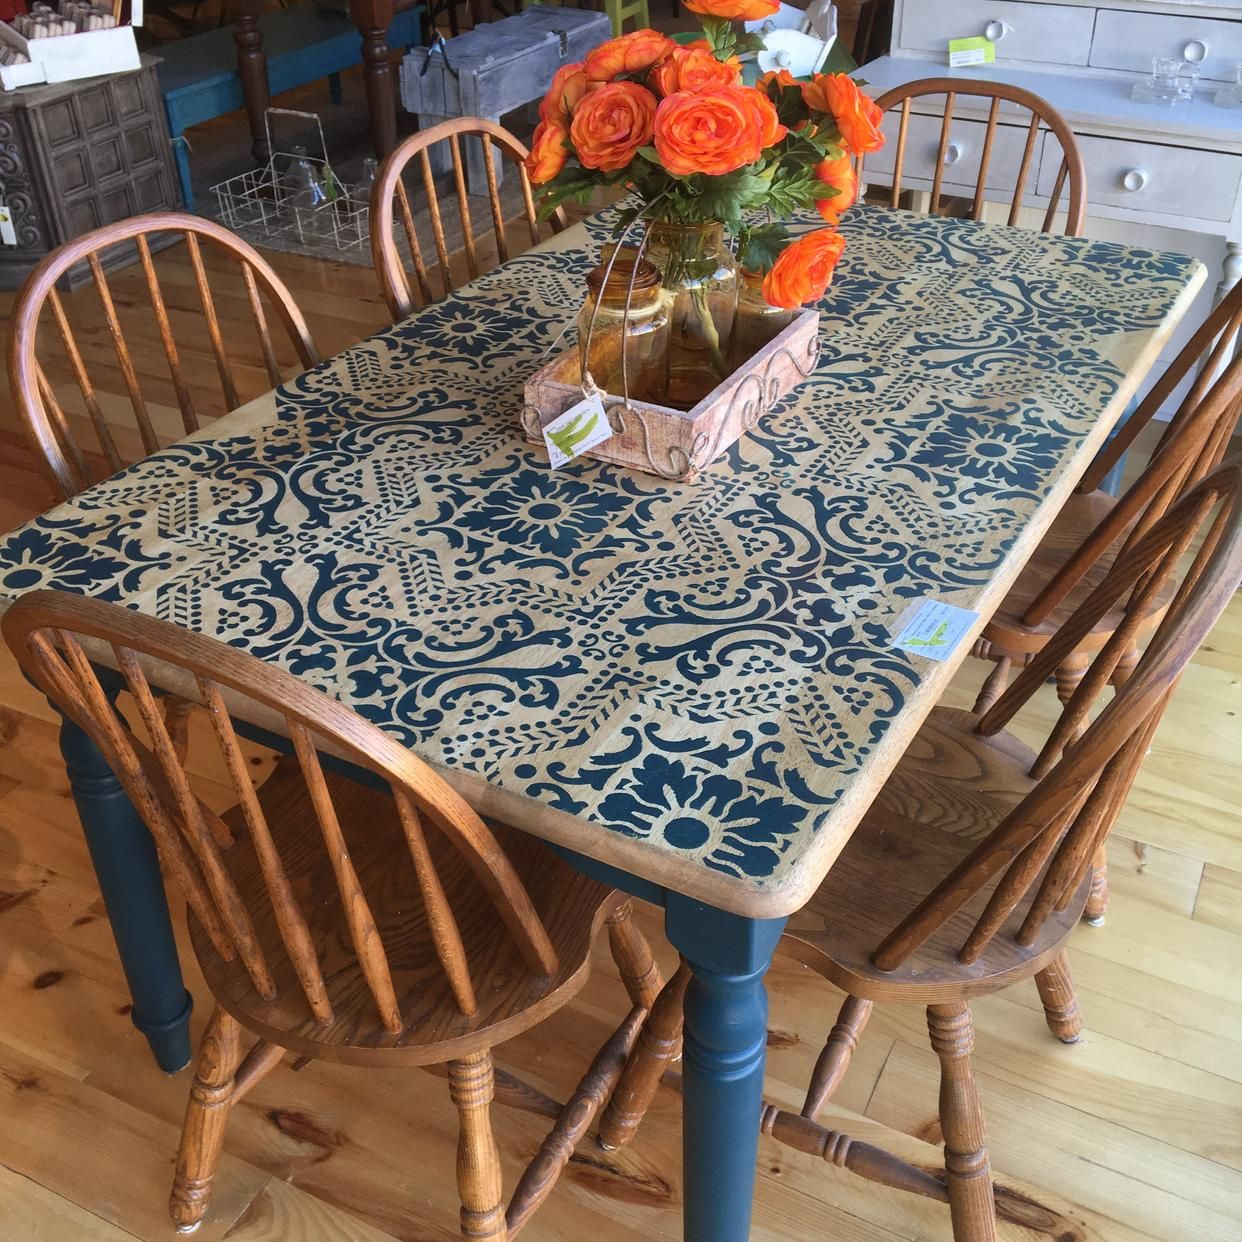 boho lace dining table dining table bohemian kitchen table on boho chic kitchen table decor id=82564